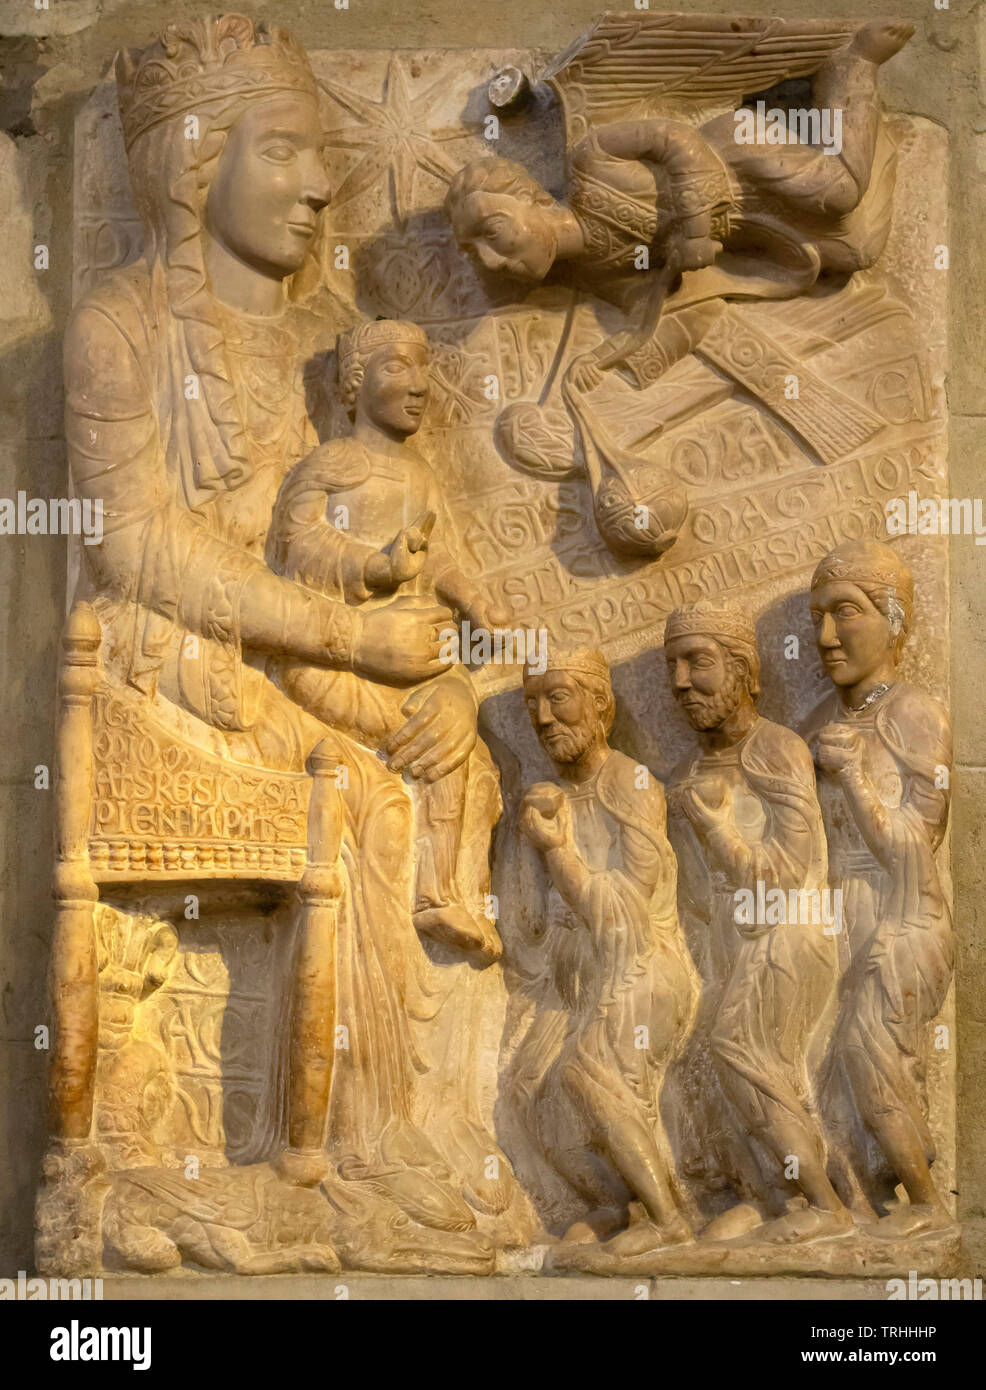 Adoration of the Magi, 13th century,  stone carving, Santa Maria della Pieve, Arezzo, Tuscany, Italy, Europe Stock Photo